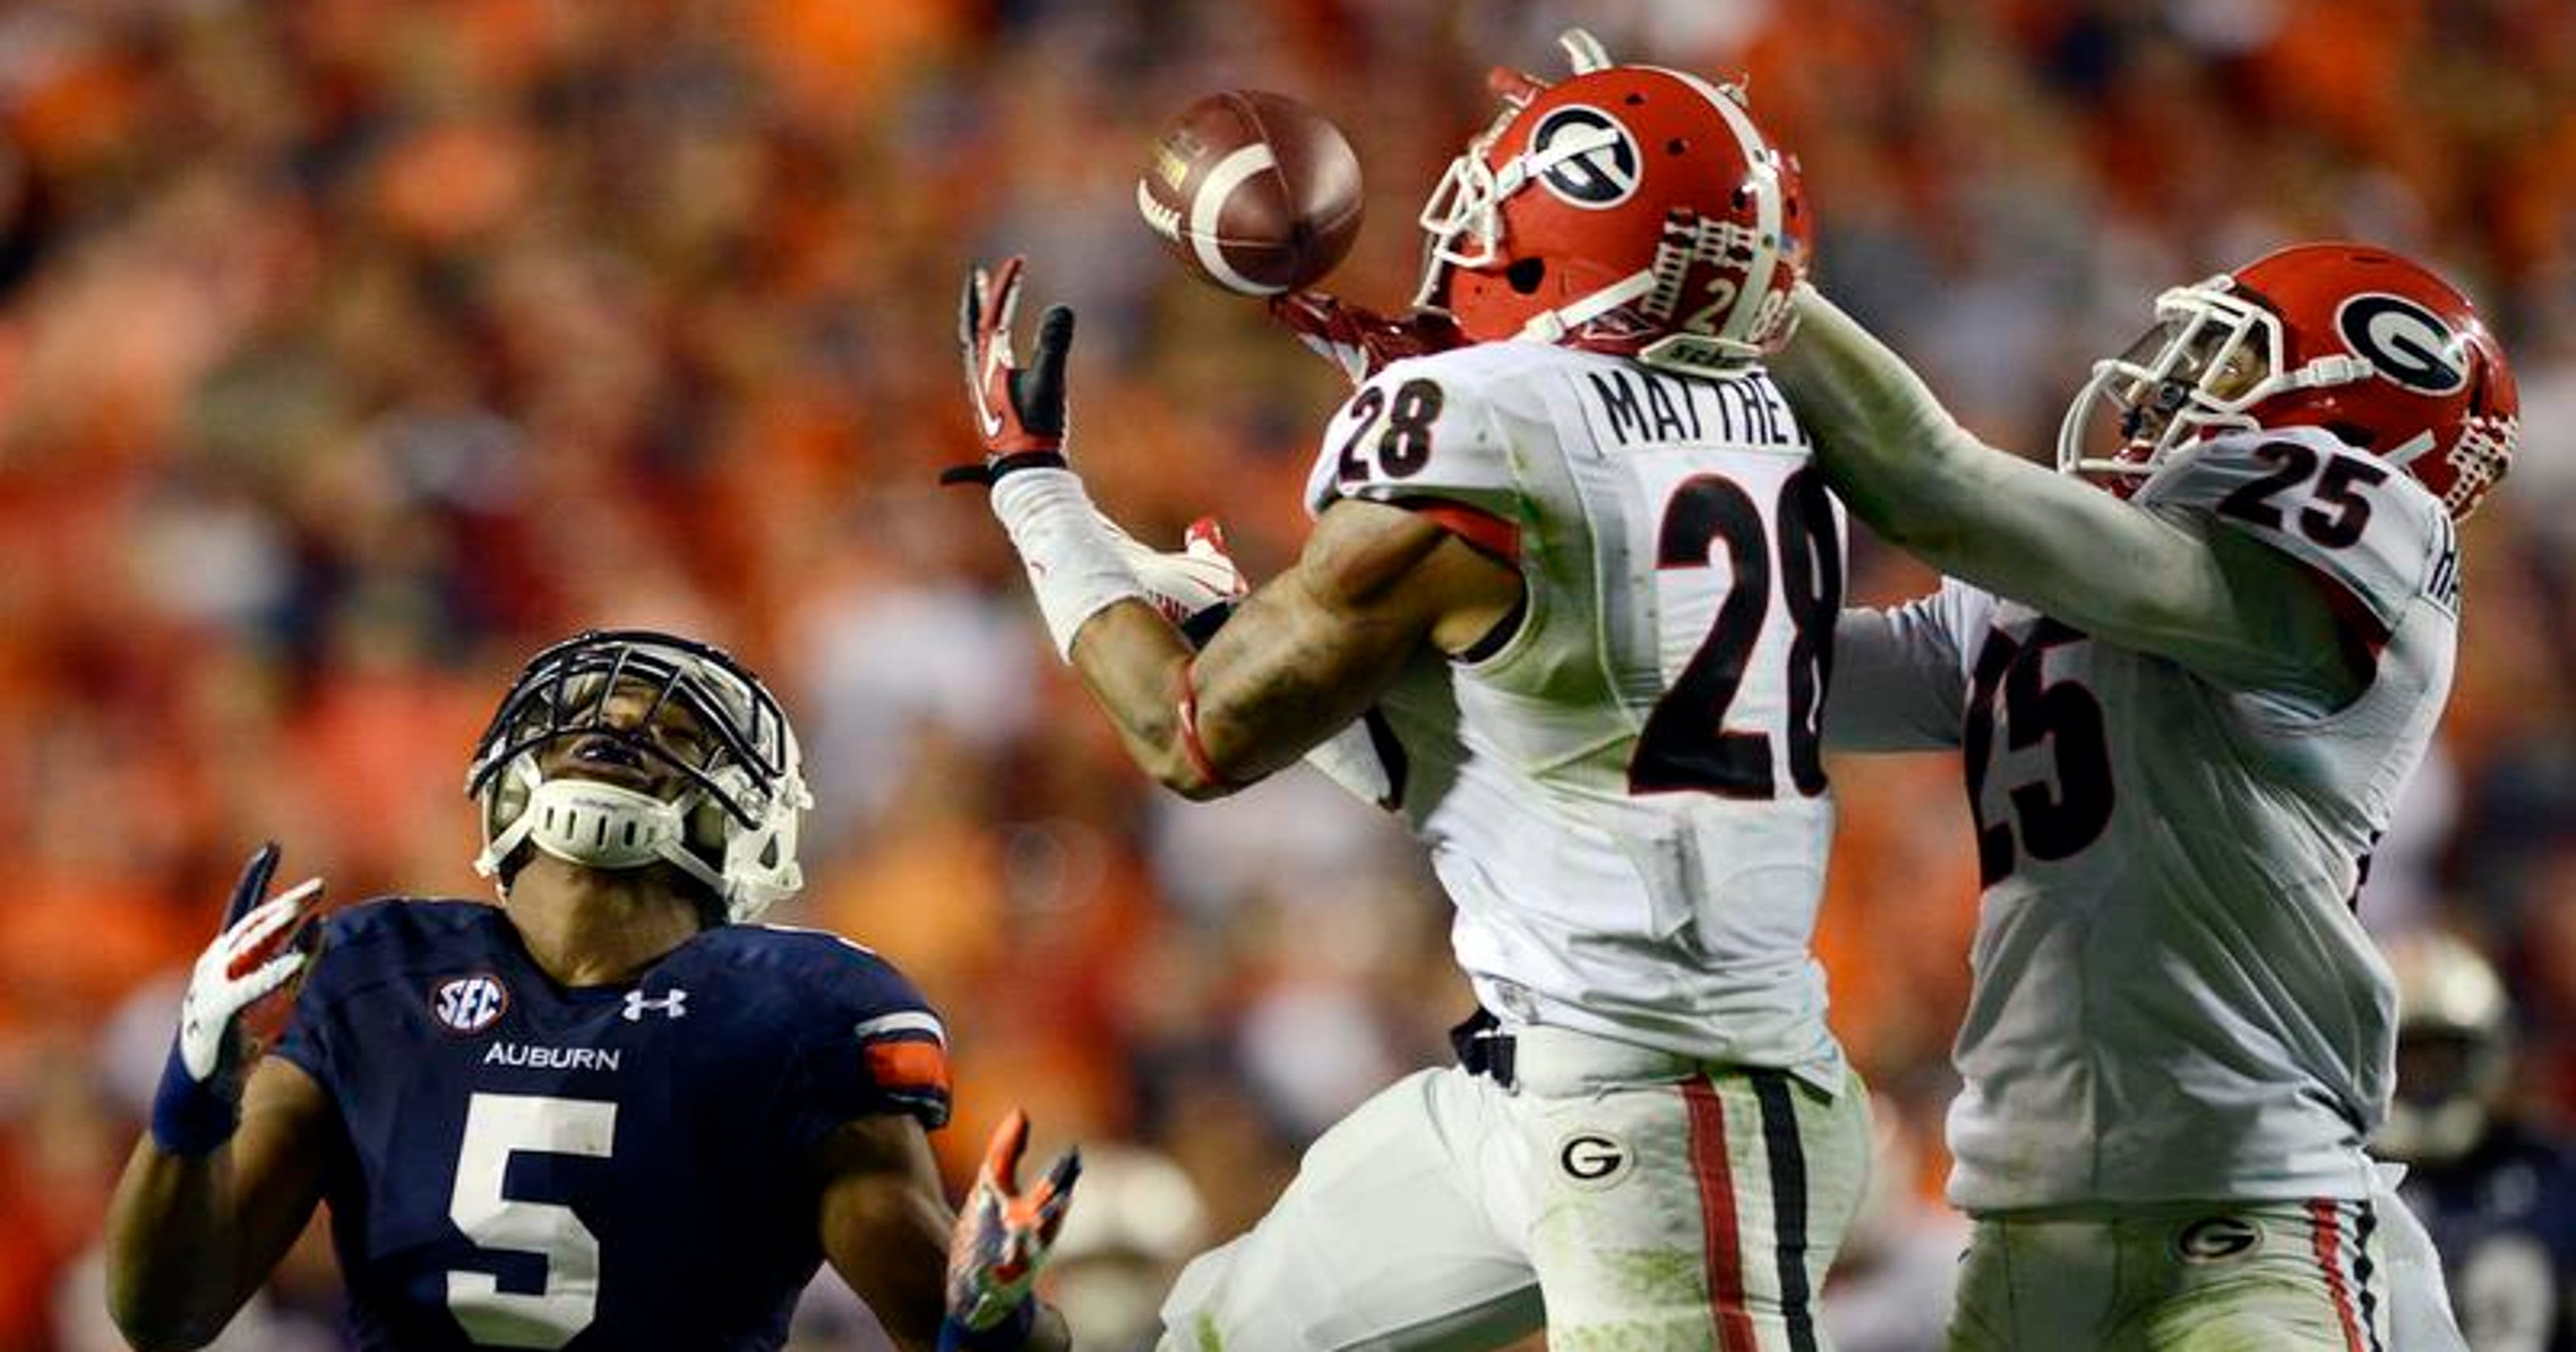 Game time for Auburn-Georgia to be determined Sunday